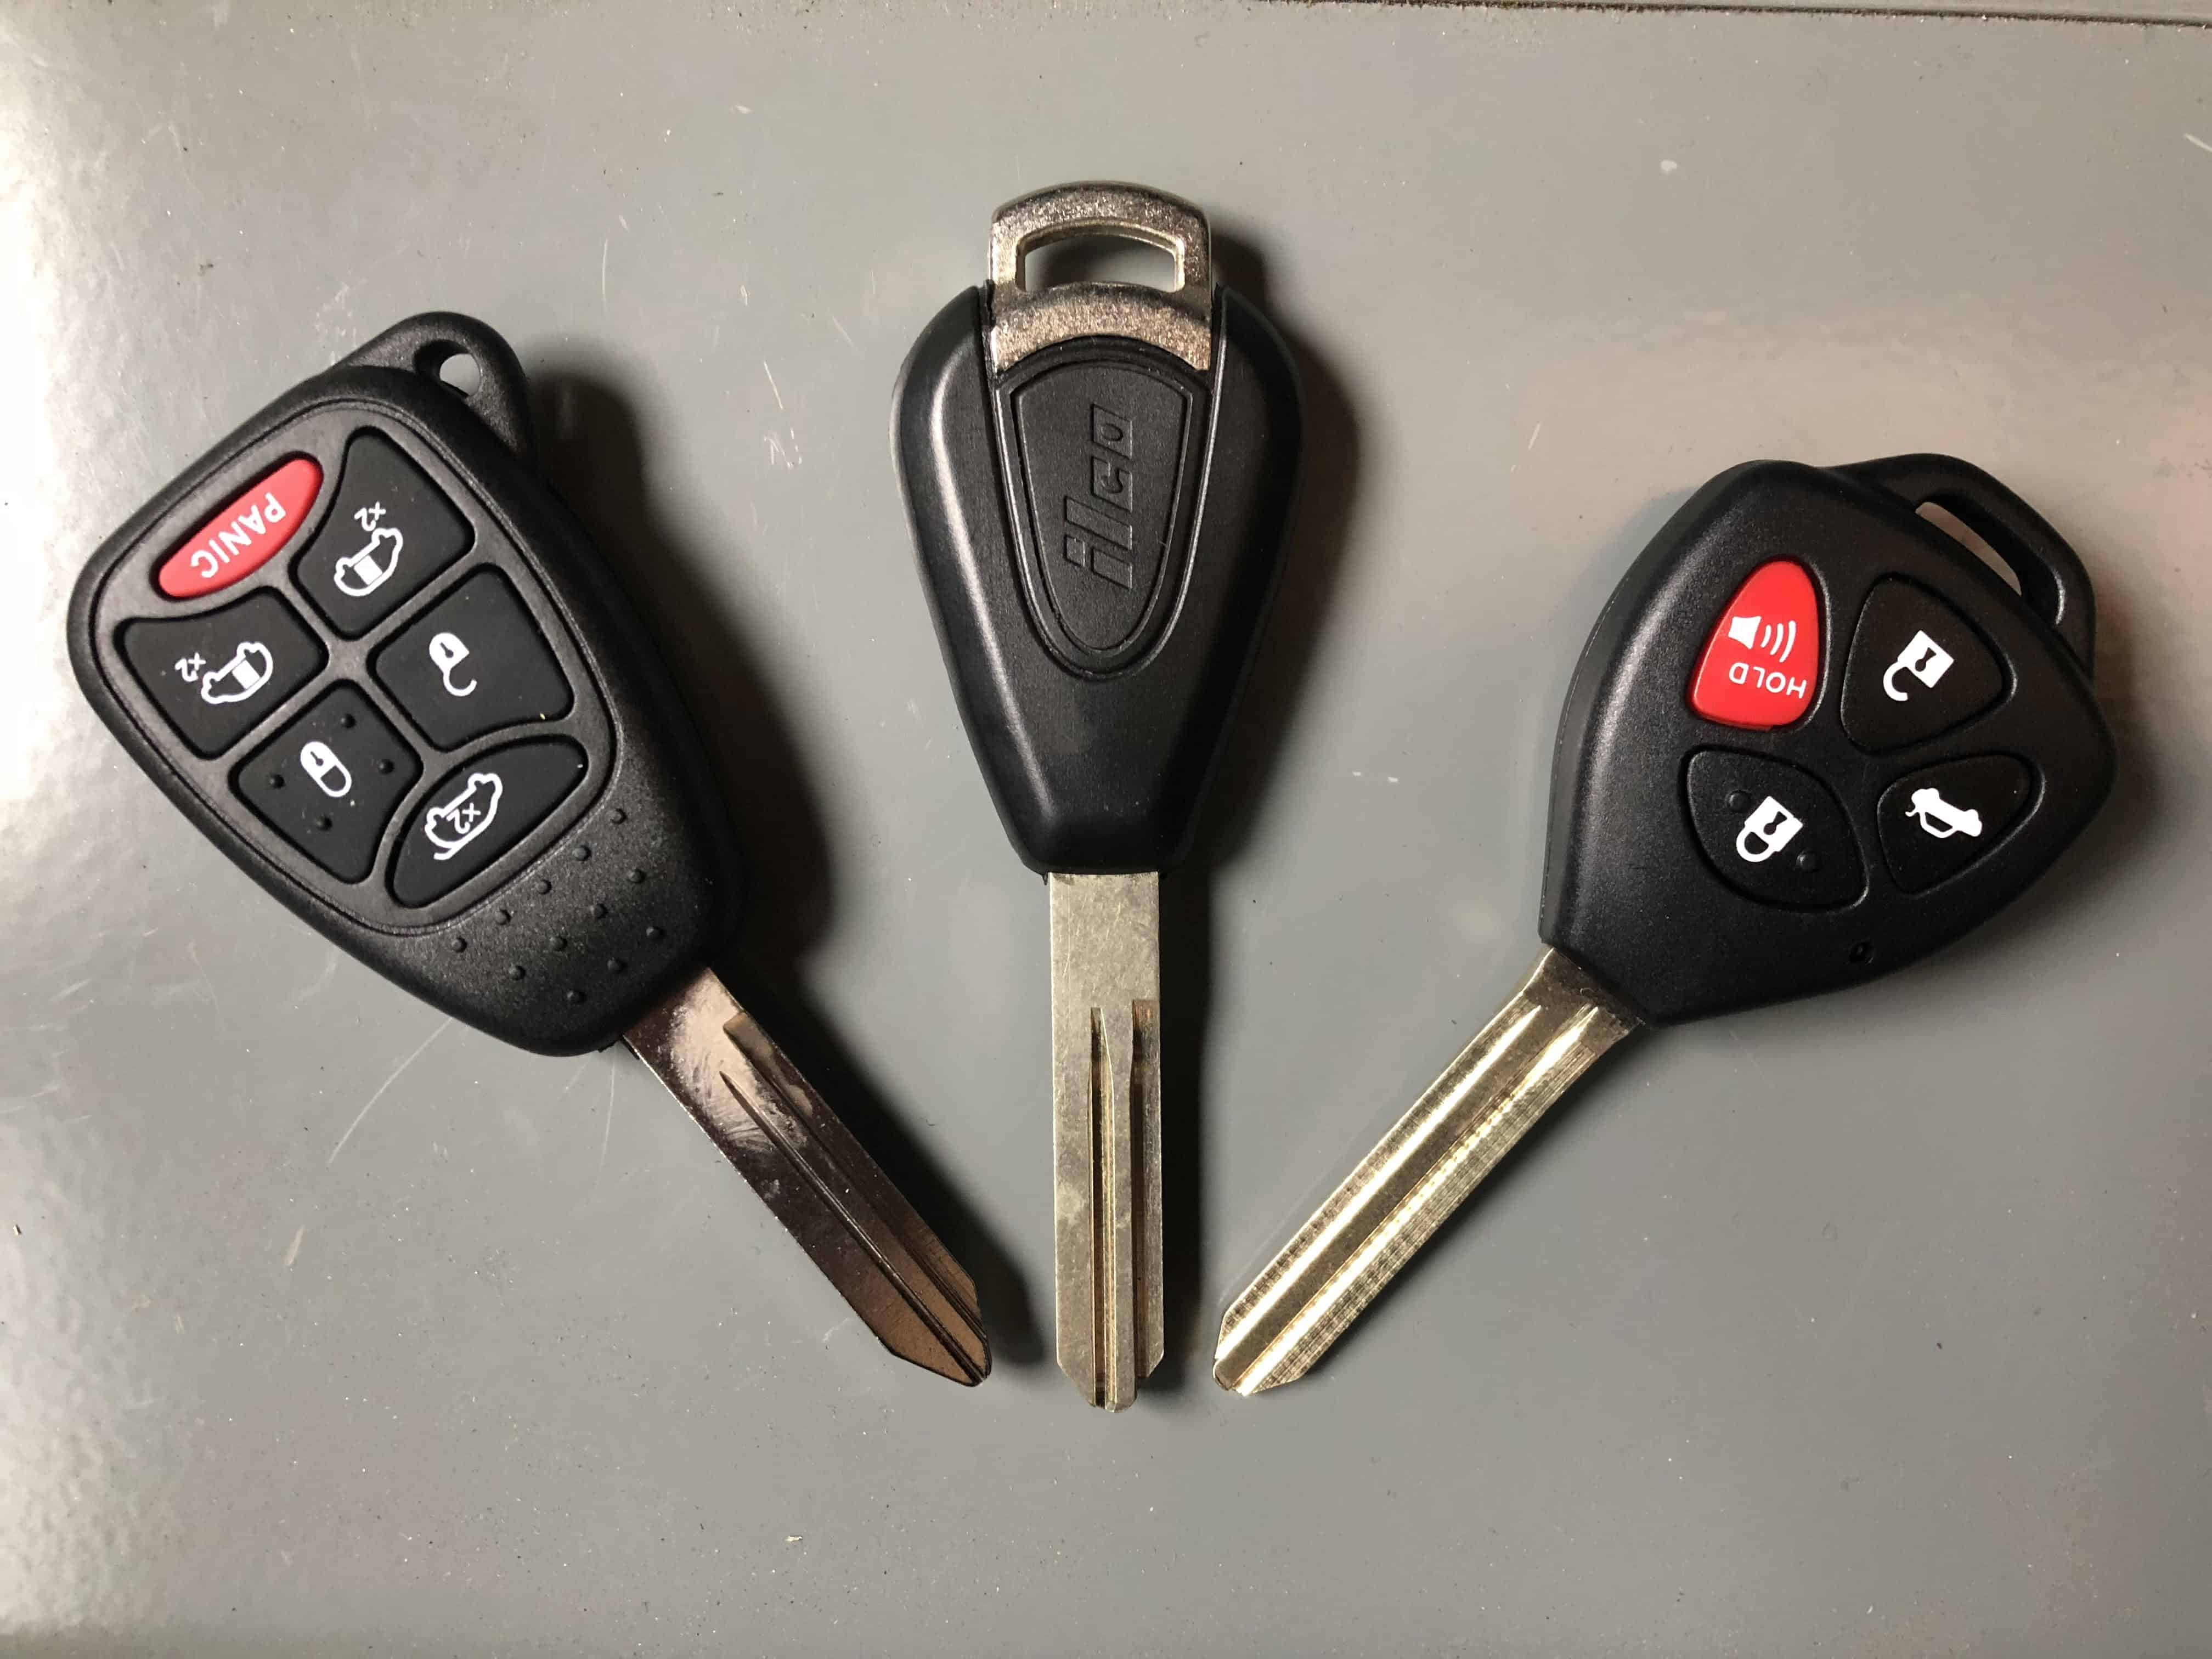 Image result for fast key